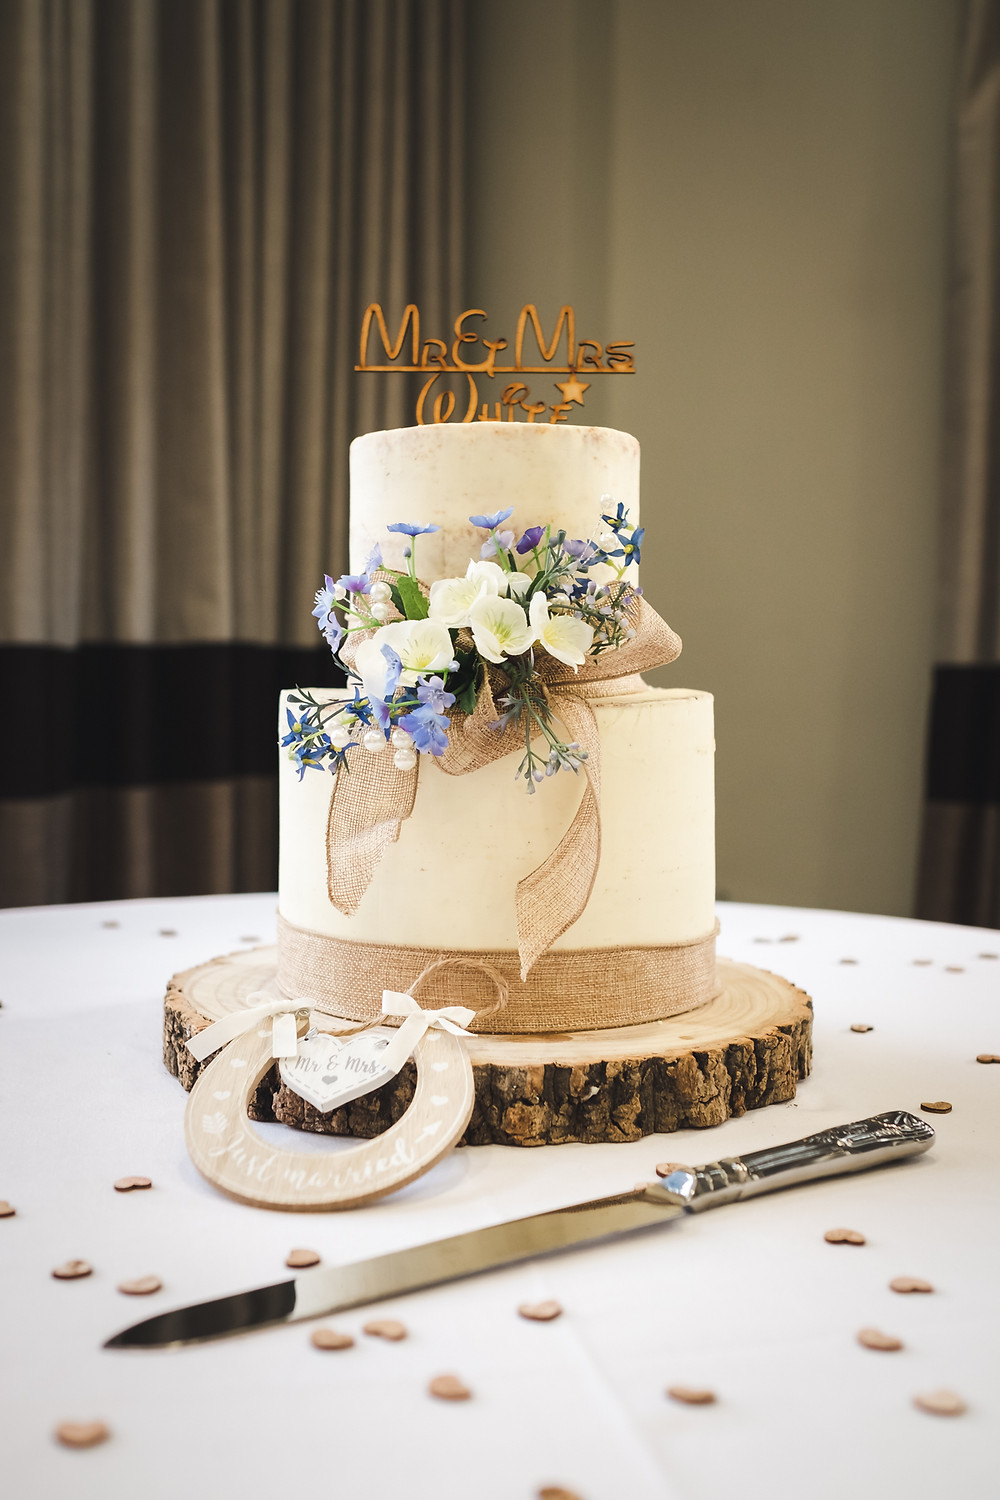 Wedding cake by Country Kitchen Cakes, Spalding